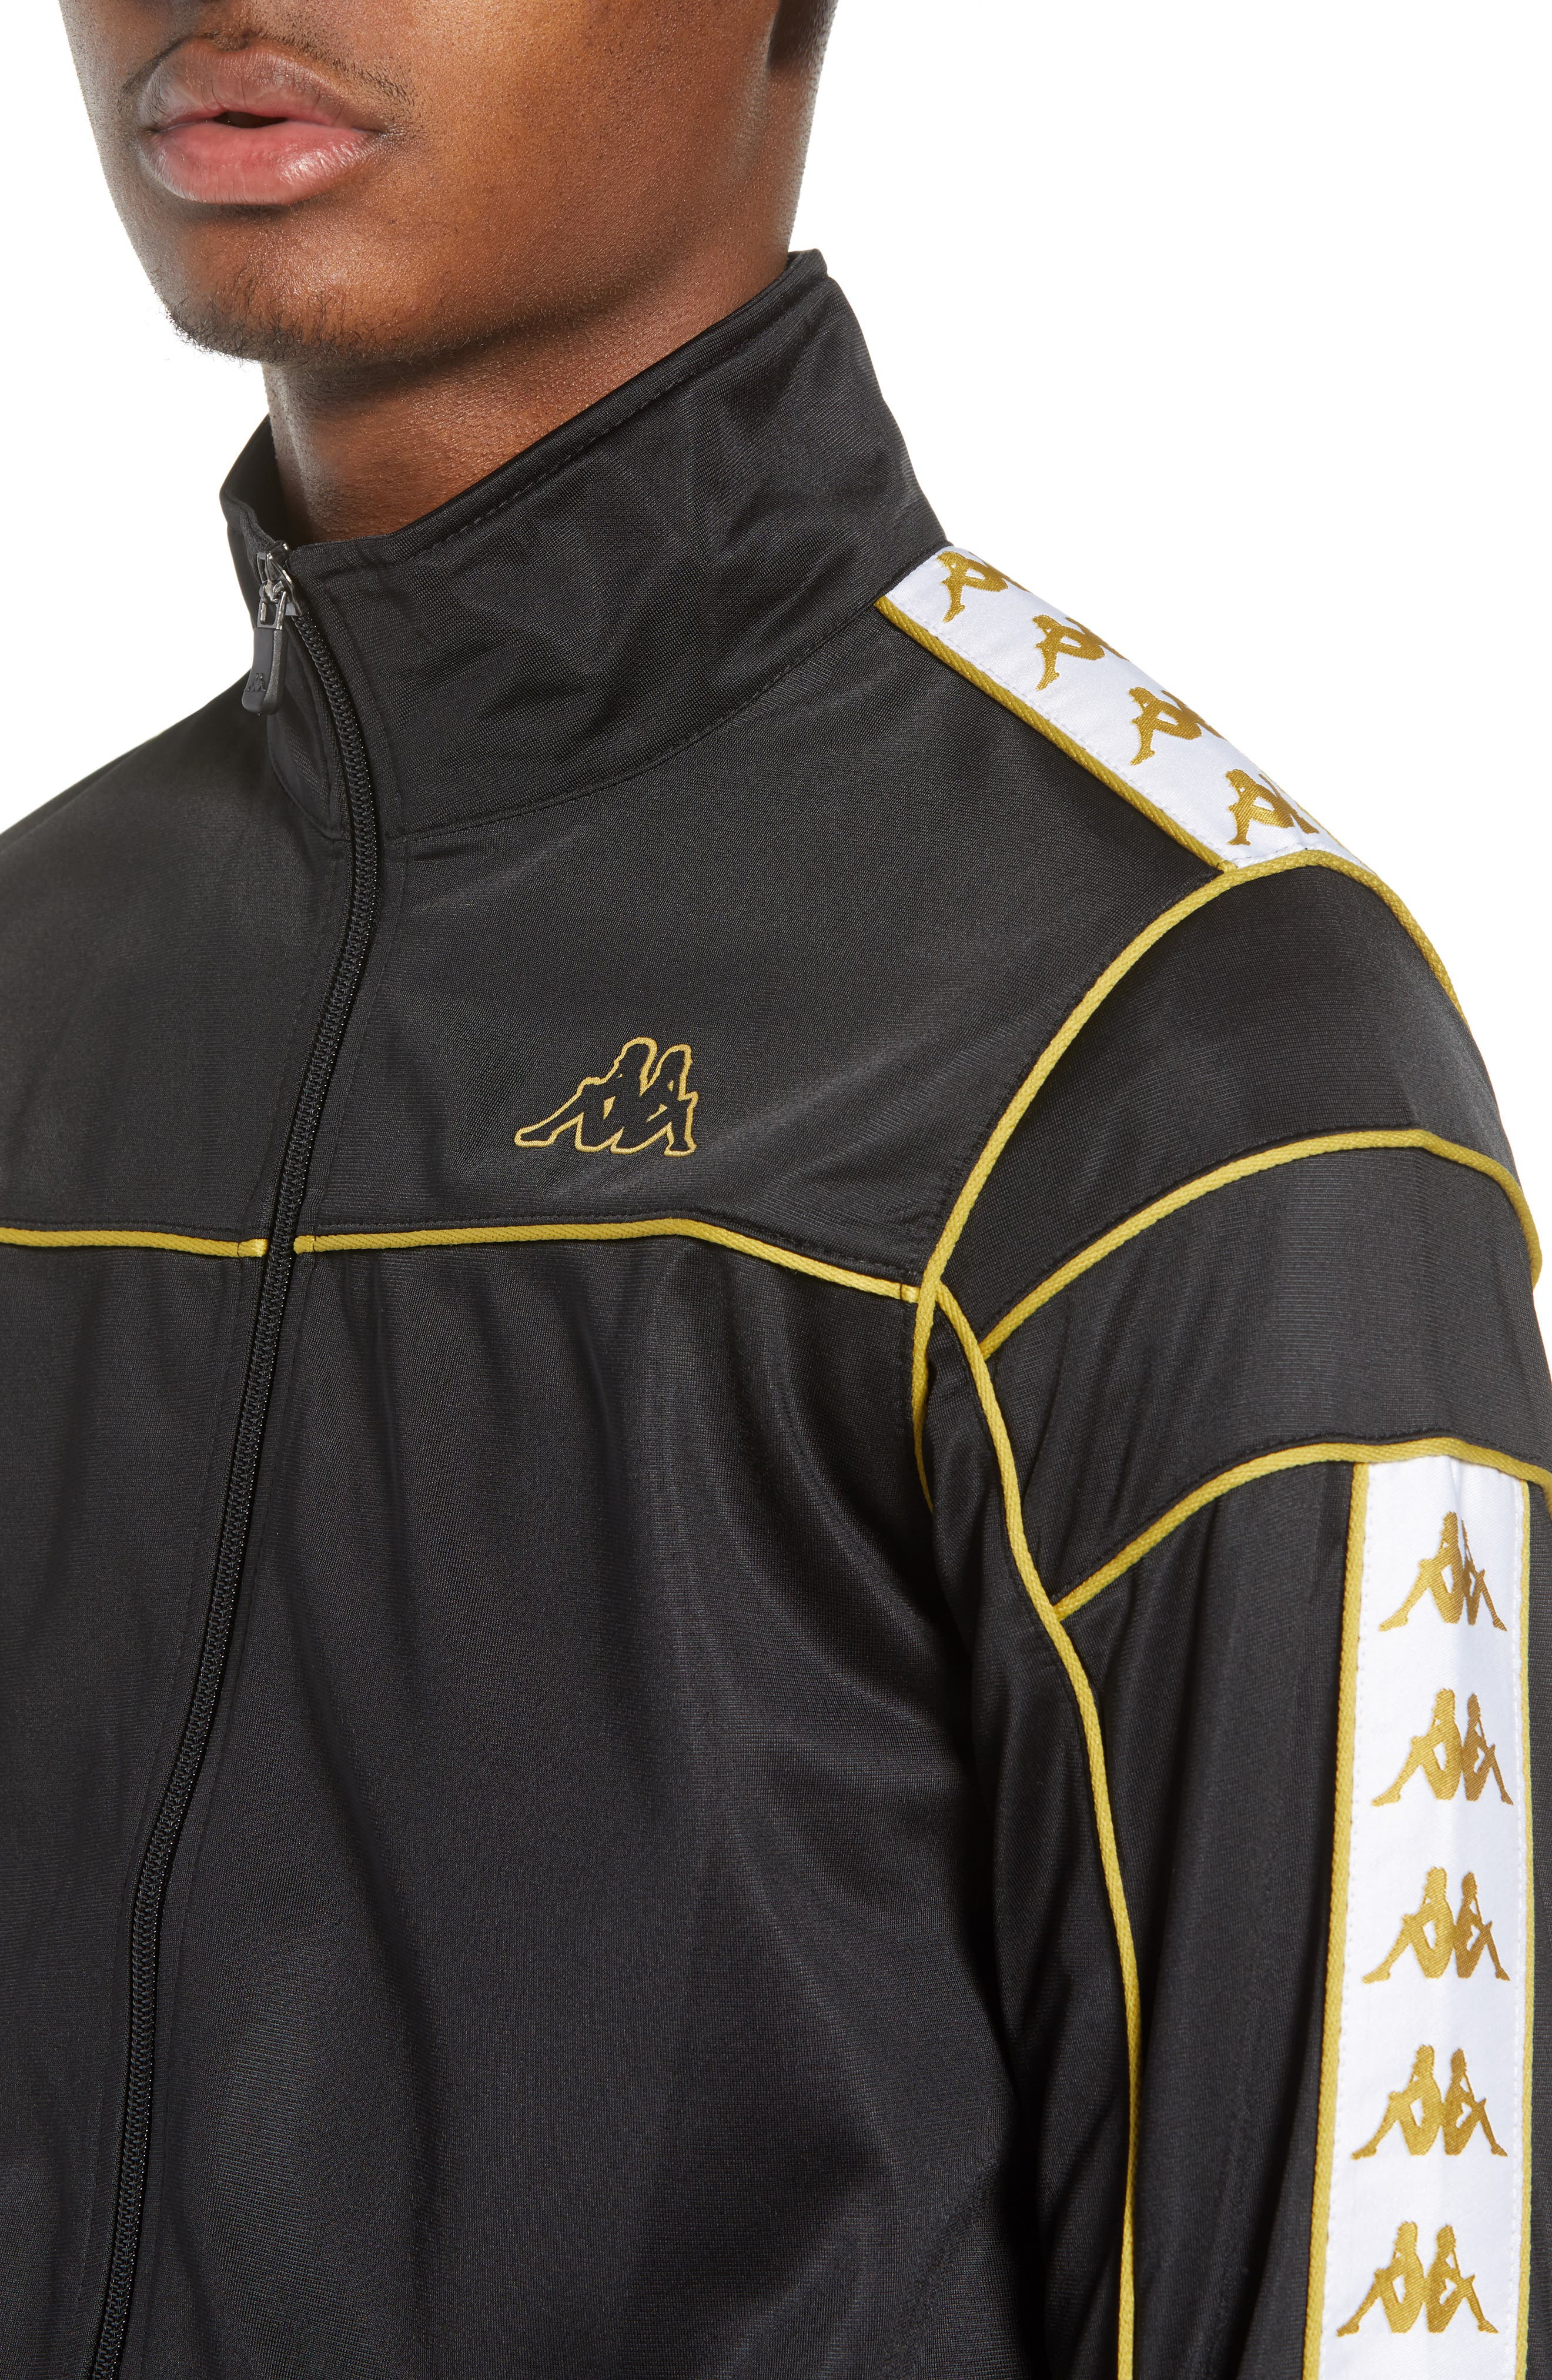 Racing Track Jacket,                             Alternate thumbnail 4, color,                             005